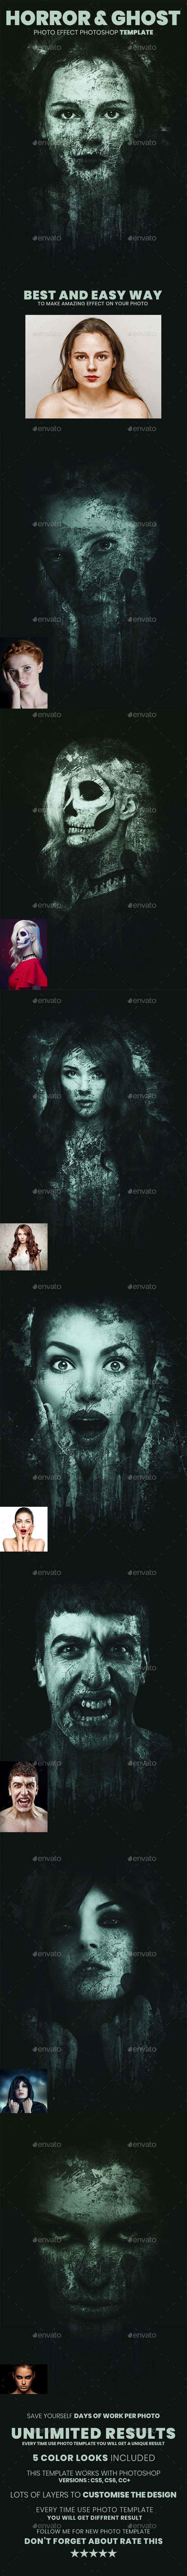 GraphicRiver Horror & Ghost Photo Effect Photoshop Template 21141945